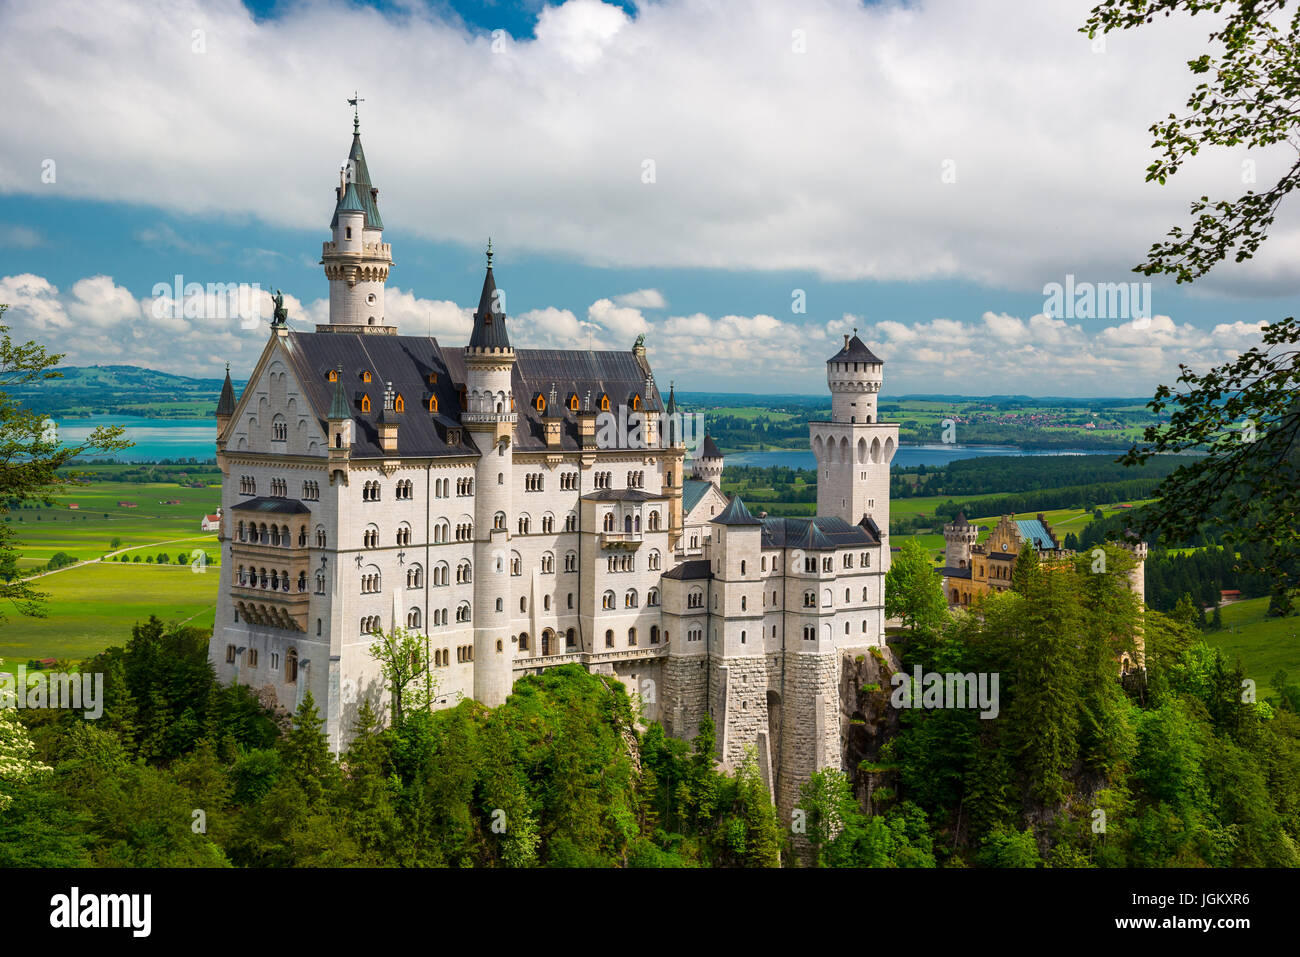 Neuschwanstein Castle on the top of the mountain, Fairytale castle in southwest Bavaria, Germany - Stock Image